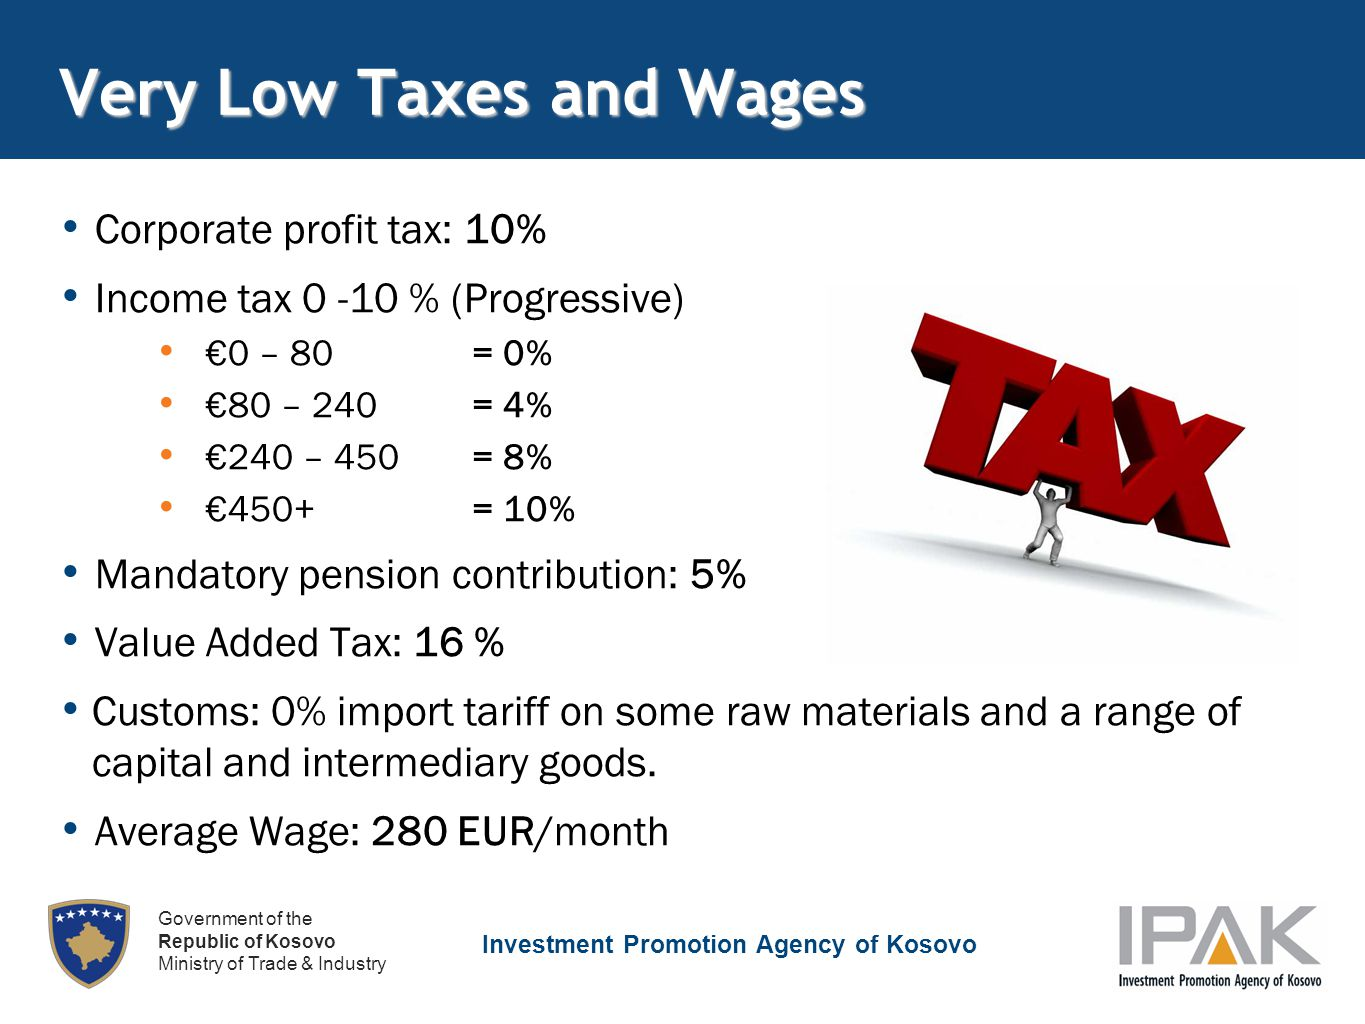 Investment Promotion Agency of Kosovo Government of the Republic of Kosovo Ministry of Trade & Industry Very Low Taxes and Wages Corporate profit tax: 10% Income tax 0 -10 % (Progressive) €0 – 80 = 0% €80 – 240 = 4% €240 – 450 = 8% €450+ = 10% Mandatory pension contribution: 5% Value Added Tax: 16 % Customs: 0% import tariff on some raw materials and a range of capital and intermediary goods.